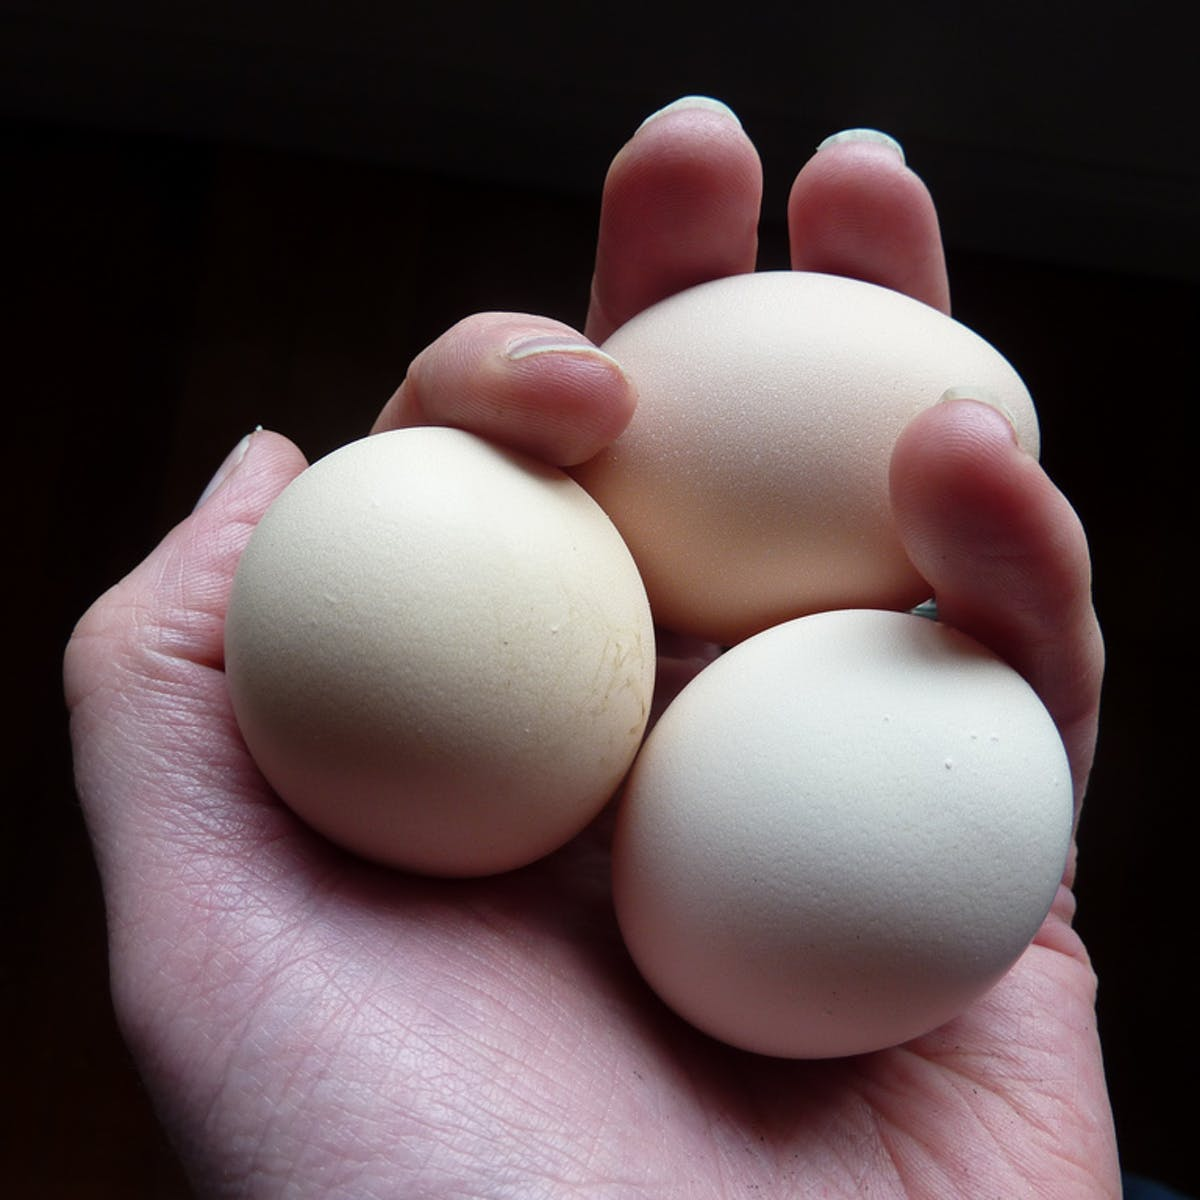 Don't get eggs-cited about free range: the realities of